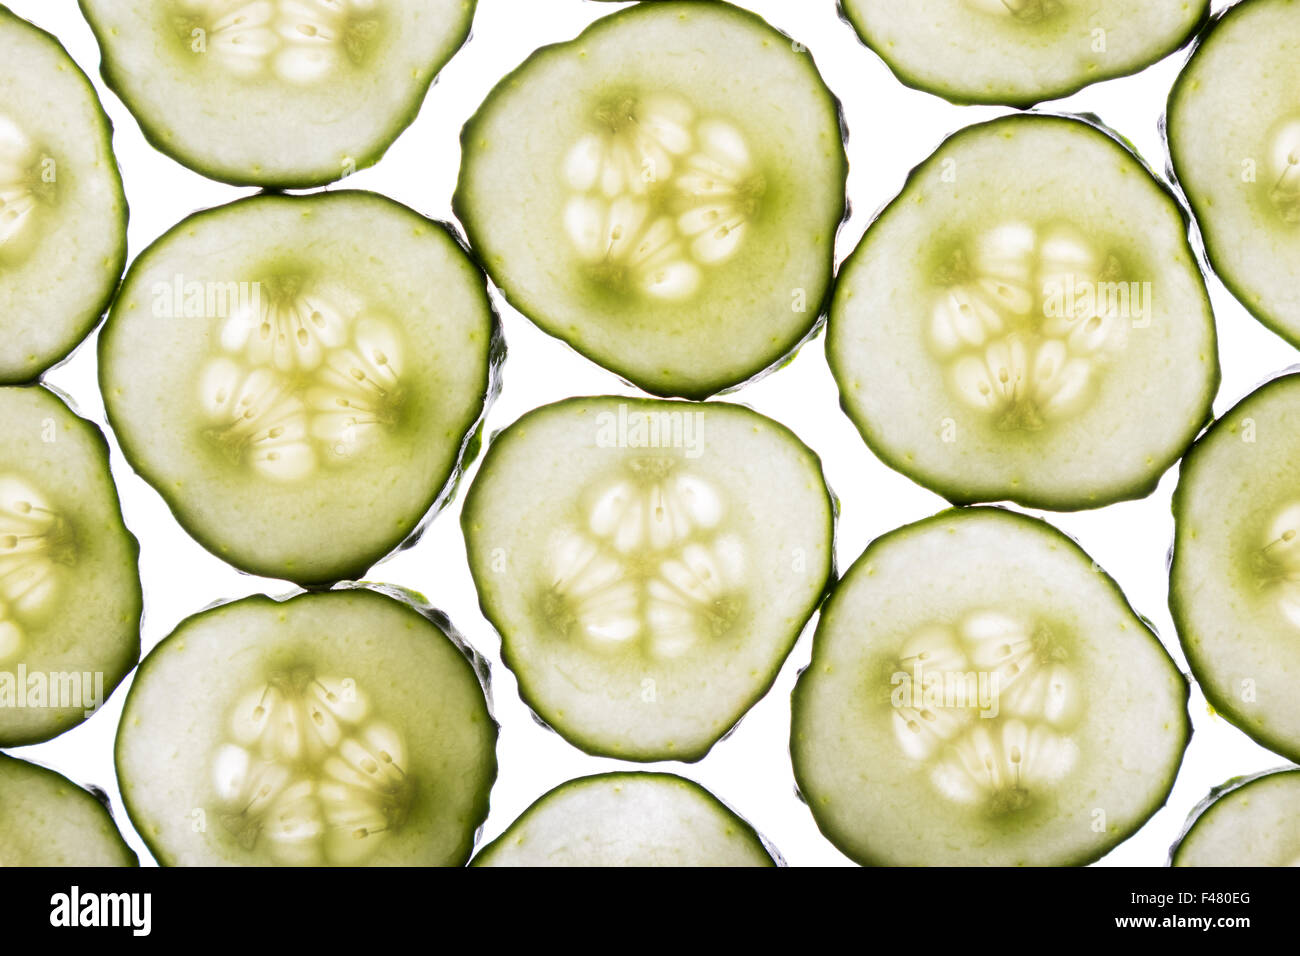 cucumber slices - Stock Image